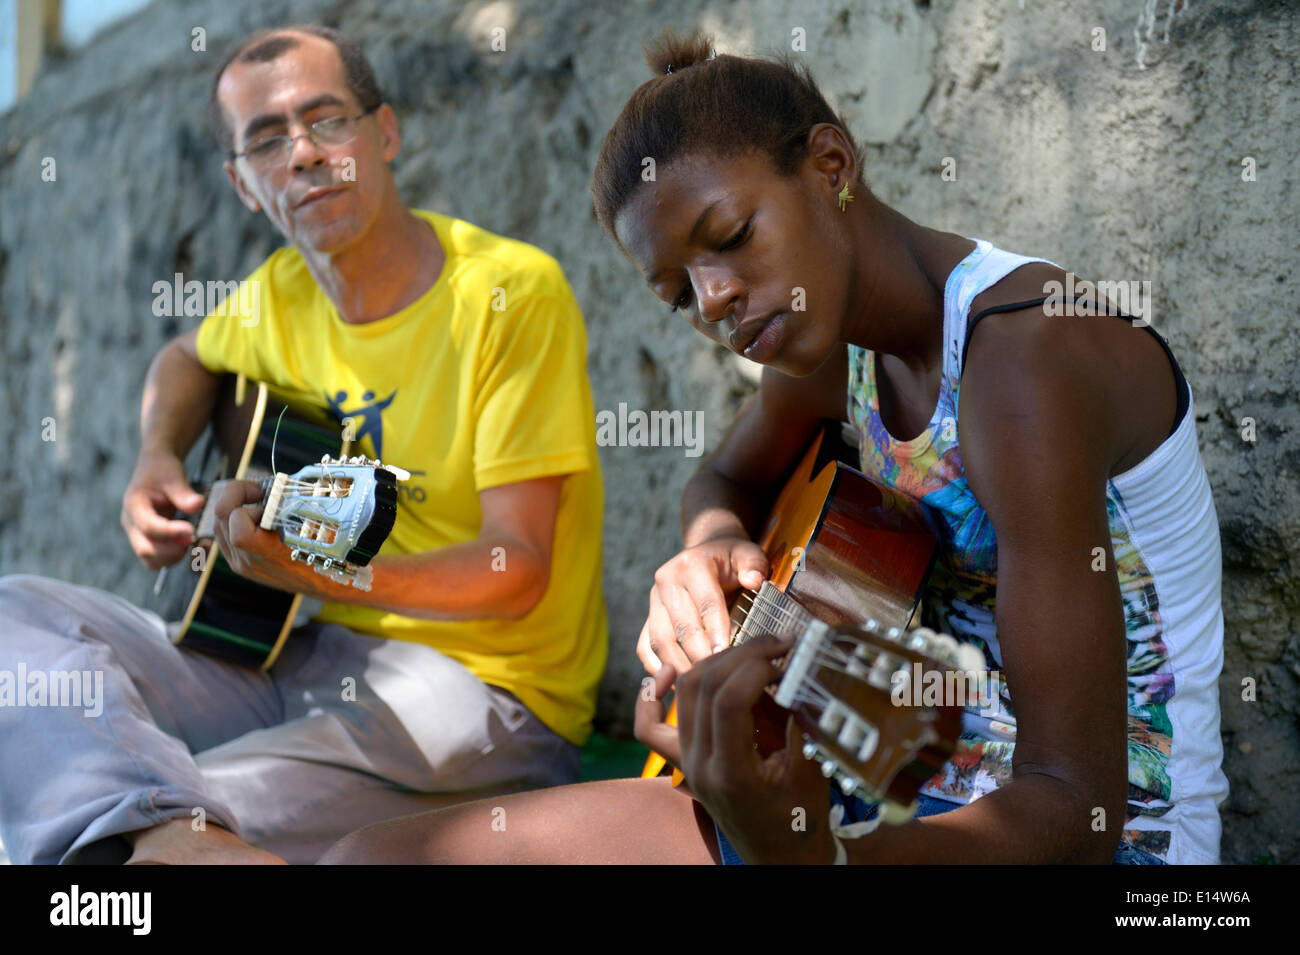 Street child, girl, 15, having guitar lessons with a social worker and musician, Sao Martinho social project, Lapa district - Stock Image